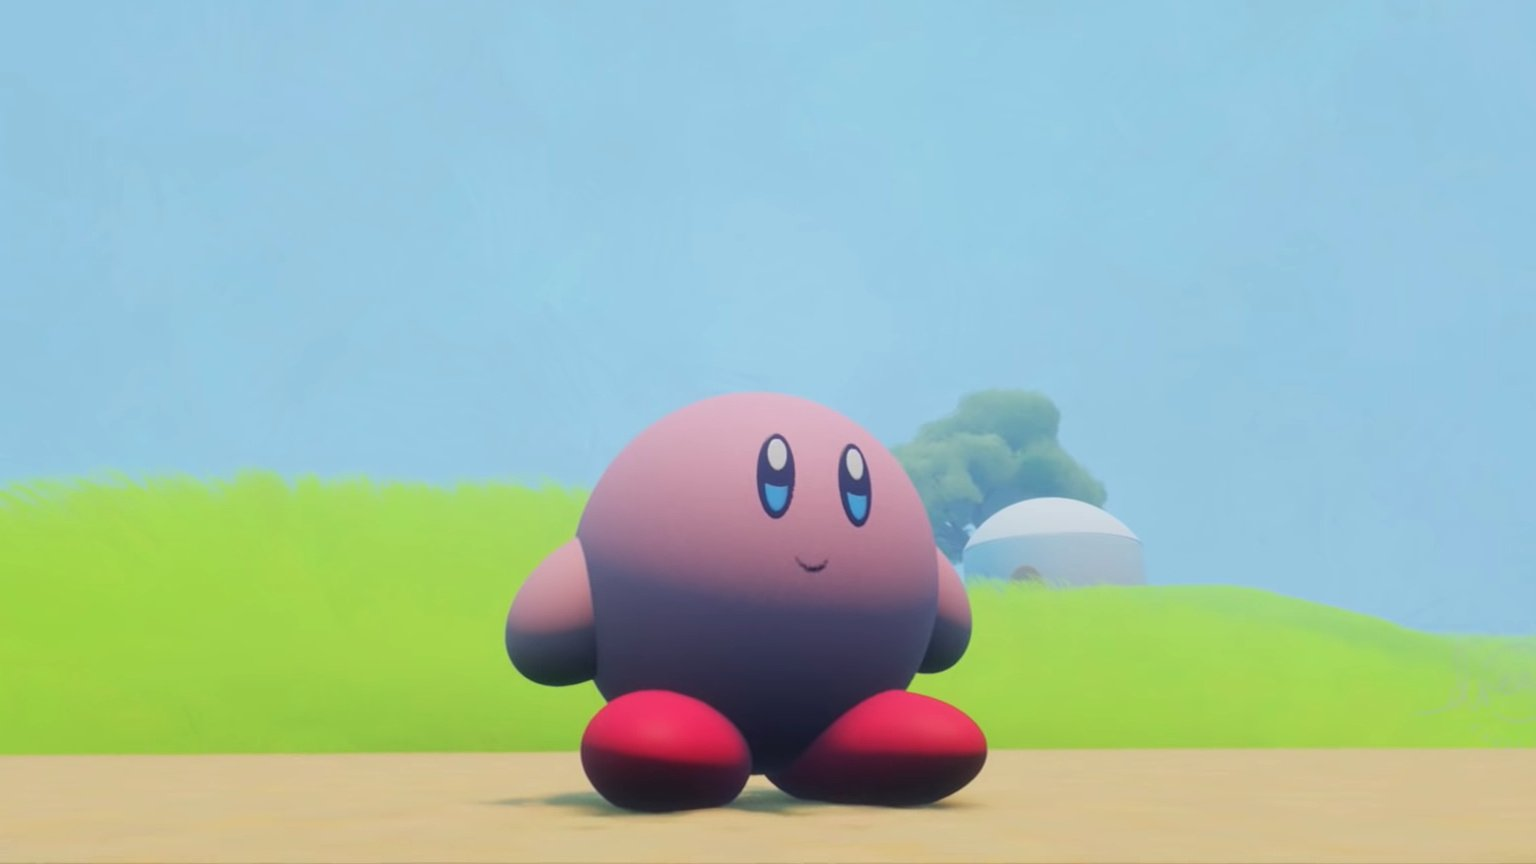 A Gorgeous 3D Kirby Game Is Now Playable On PS4 Thanks To Dreams